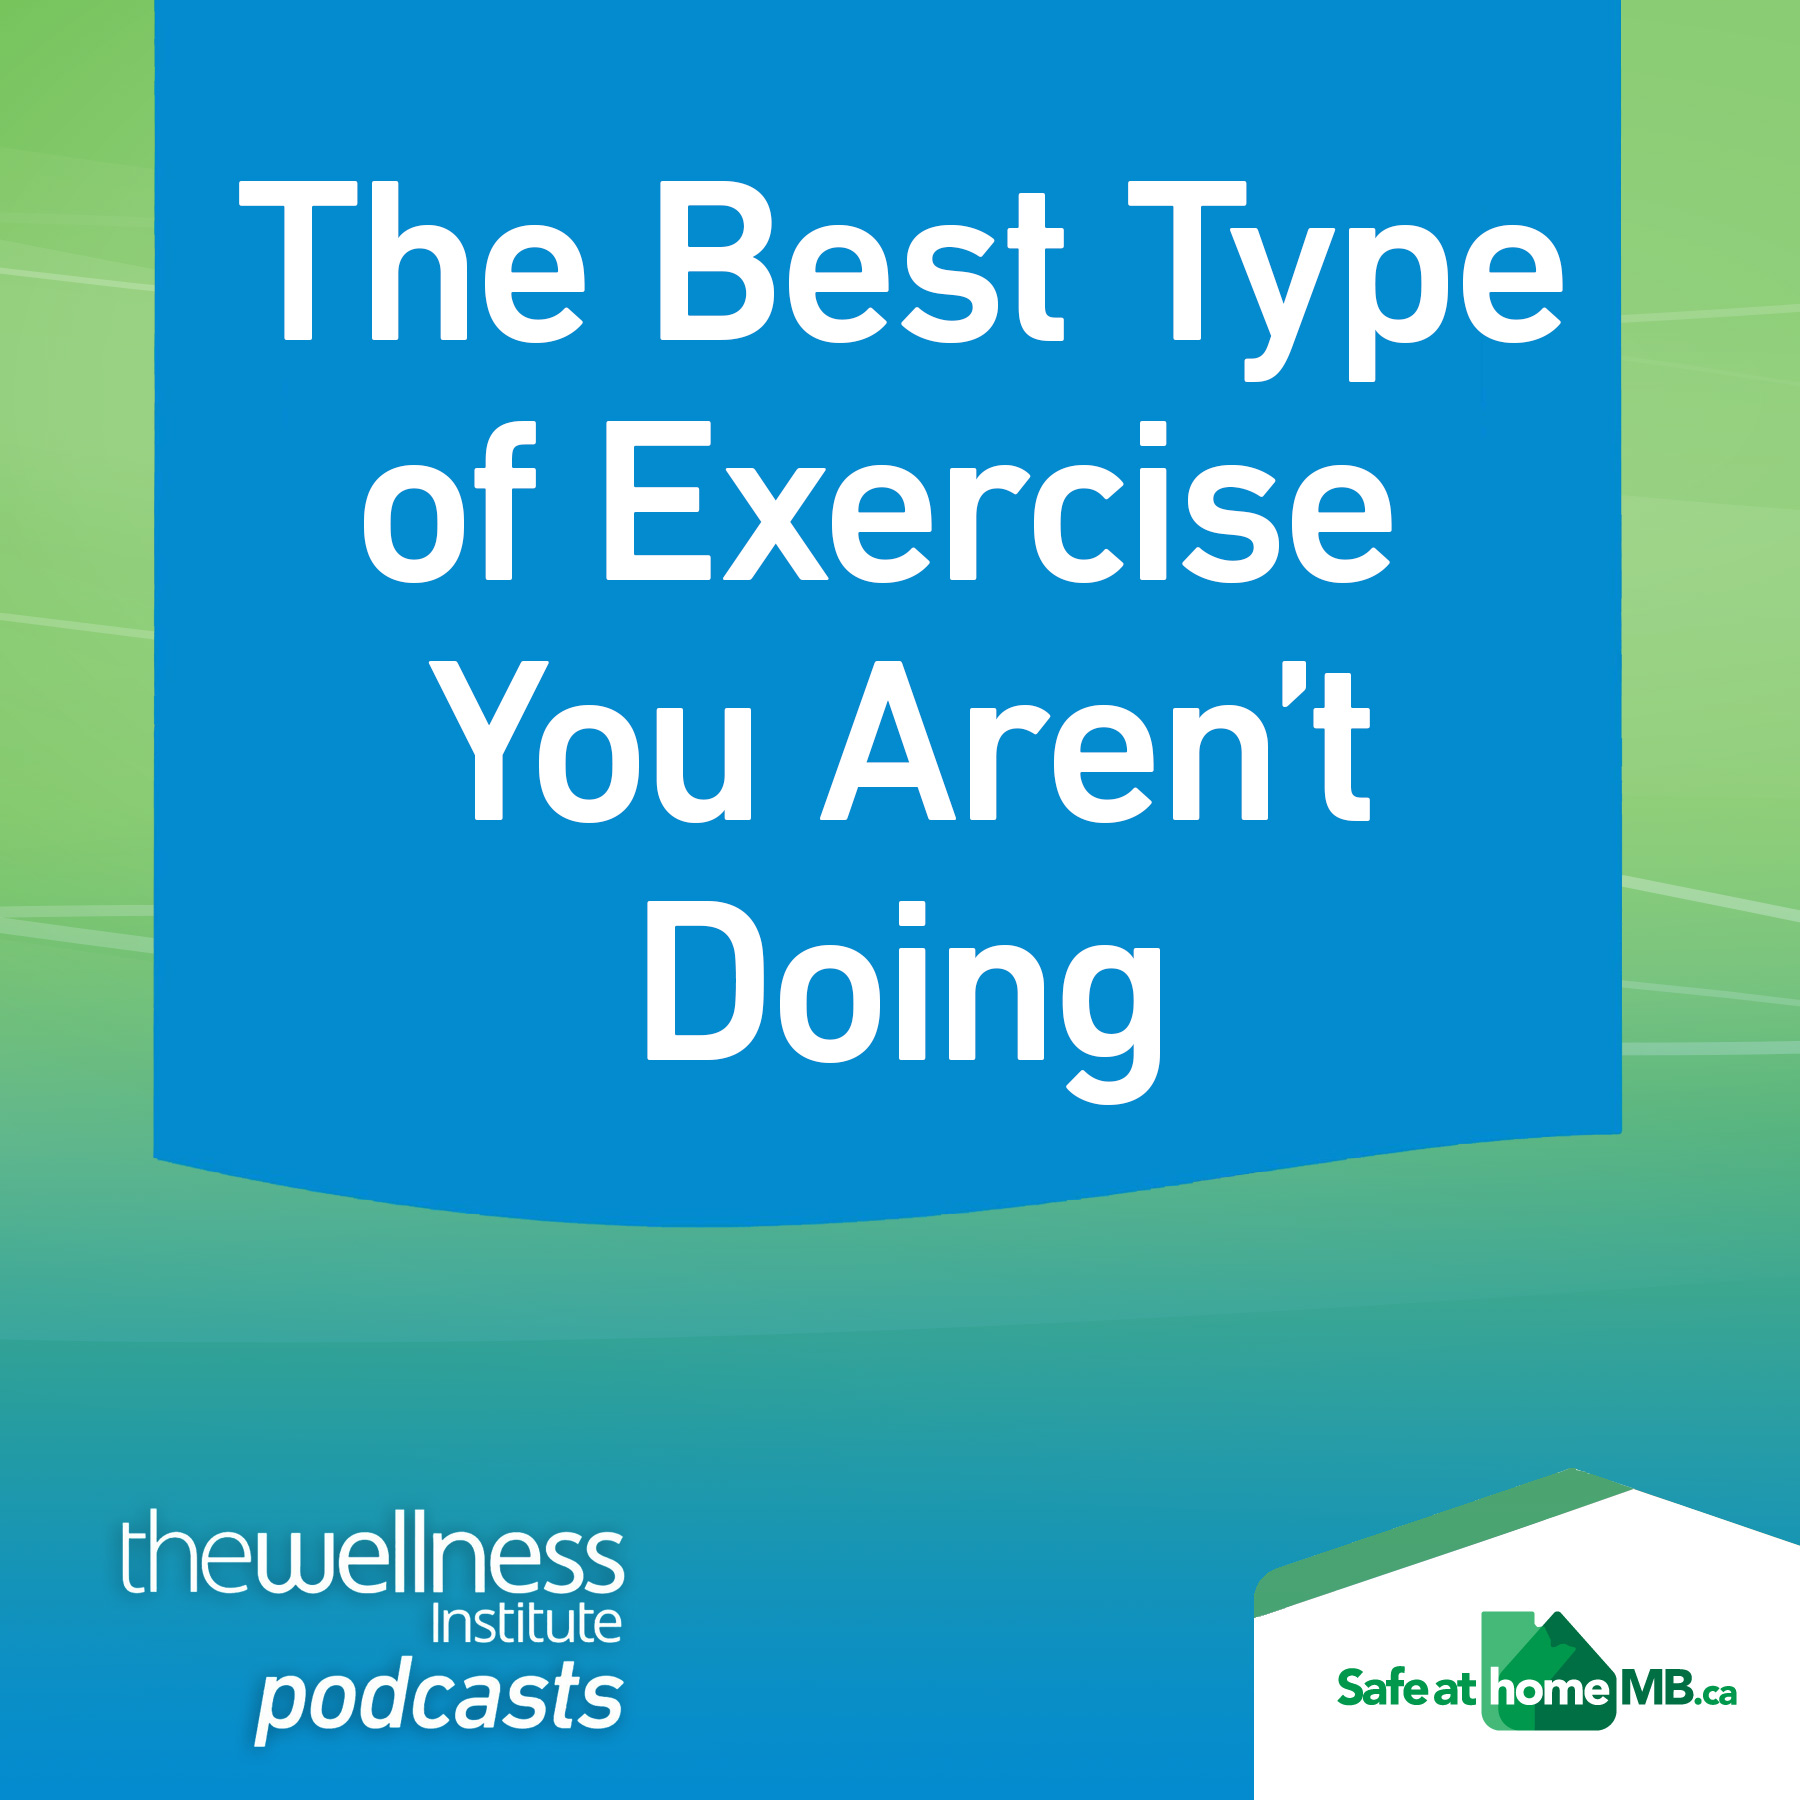 podcast-banner-The-Best-Type-of-Exercise-You-Arent-Doing